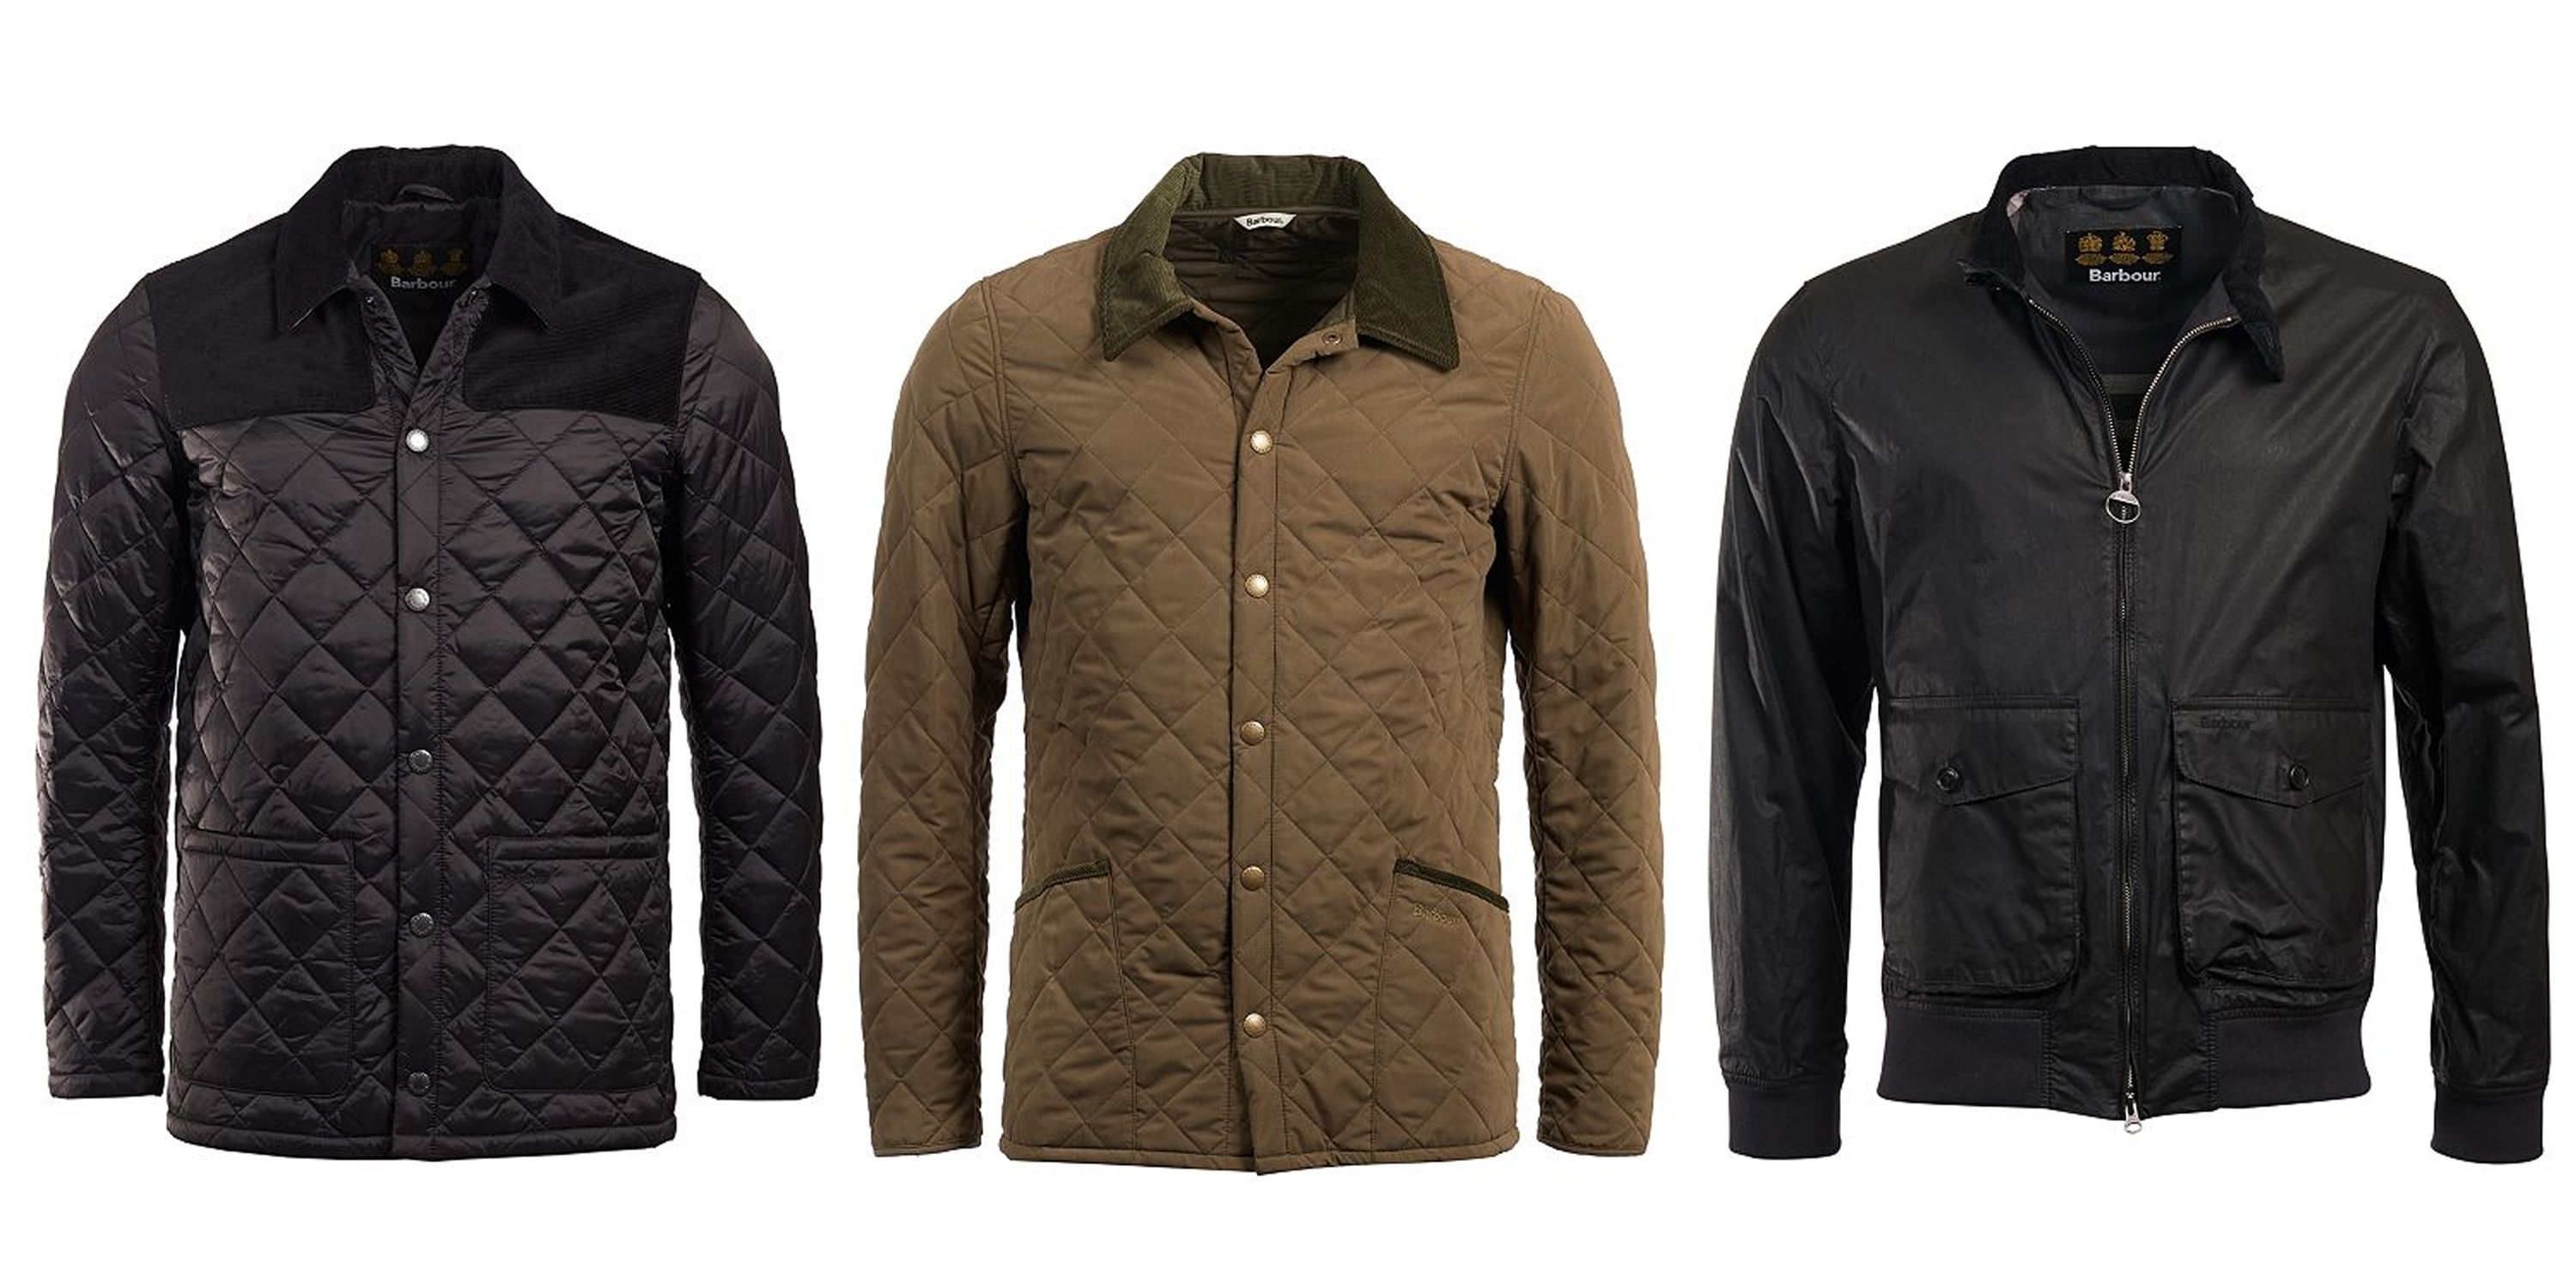 These Barbour Jackets Are the Perfect Last-Minute Gift for the Guy On Your List